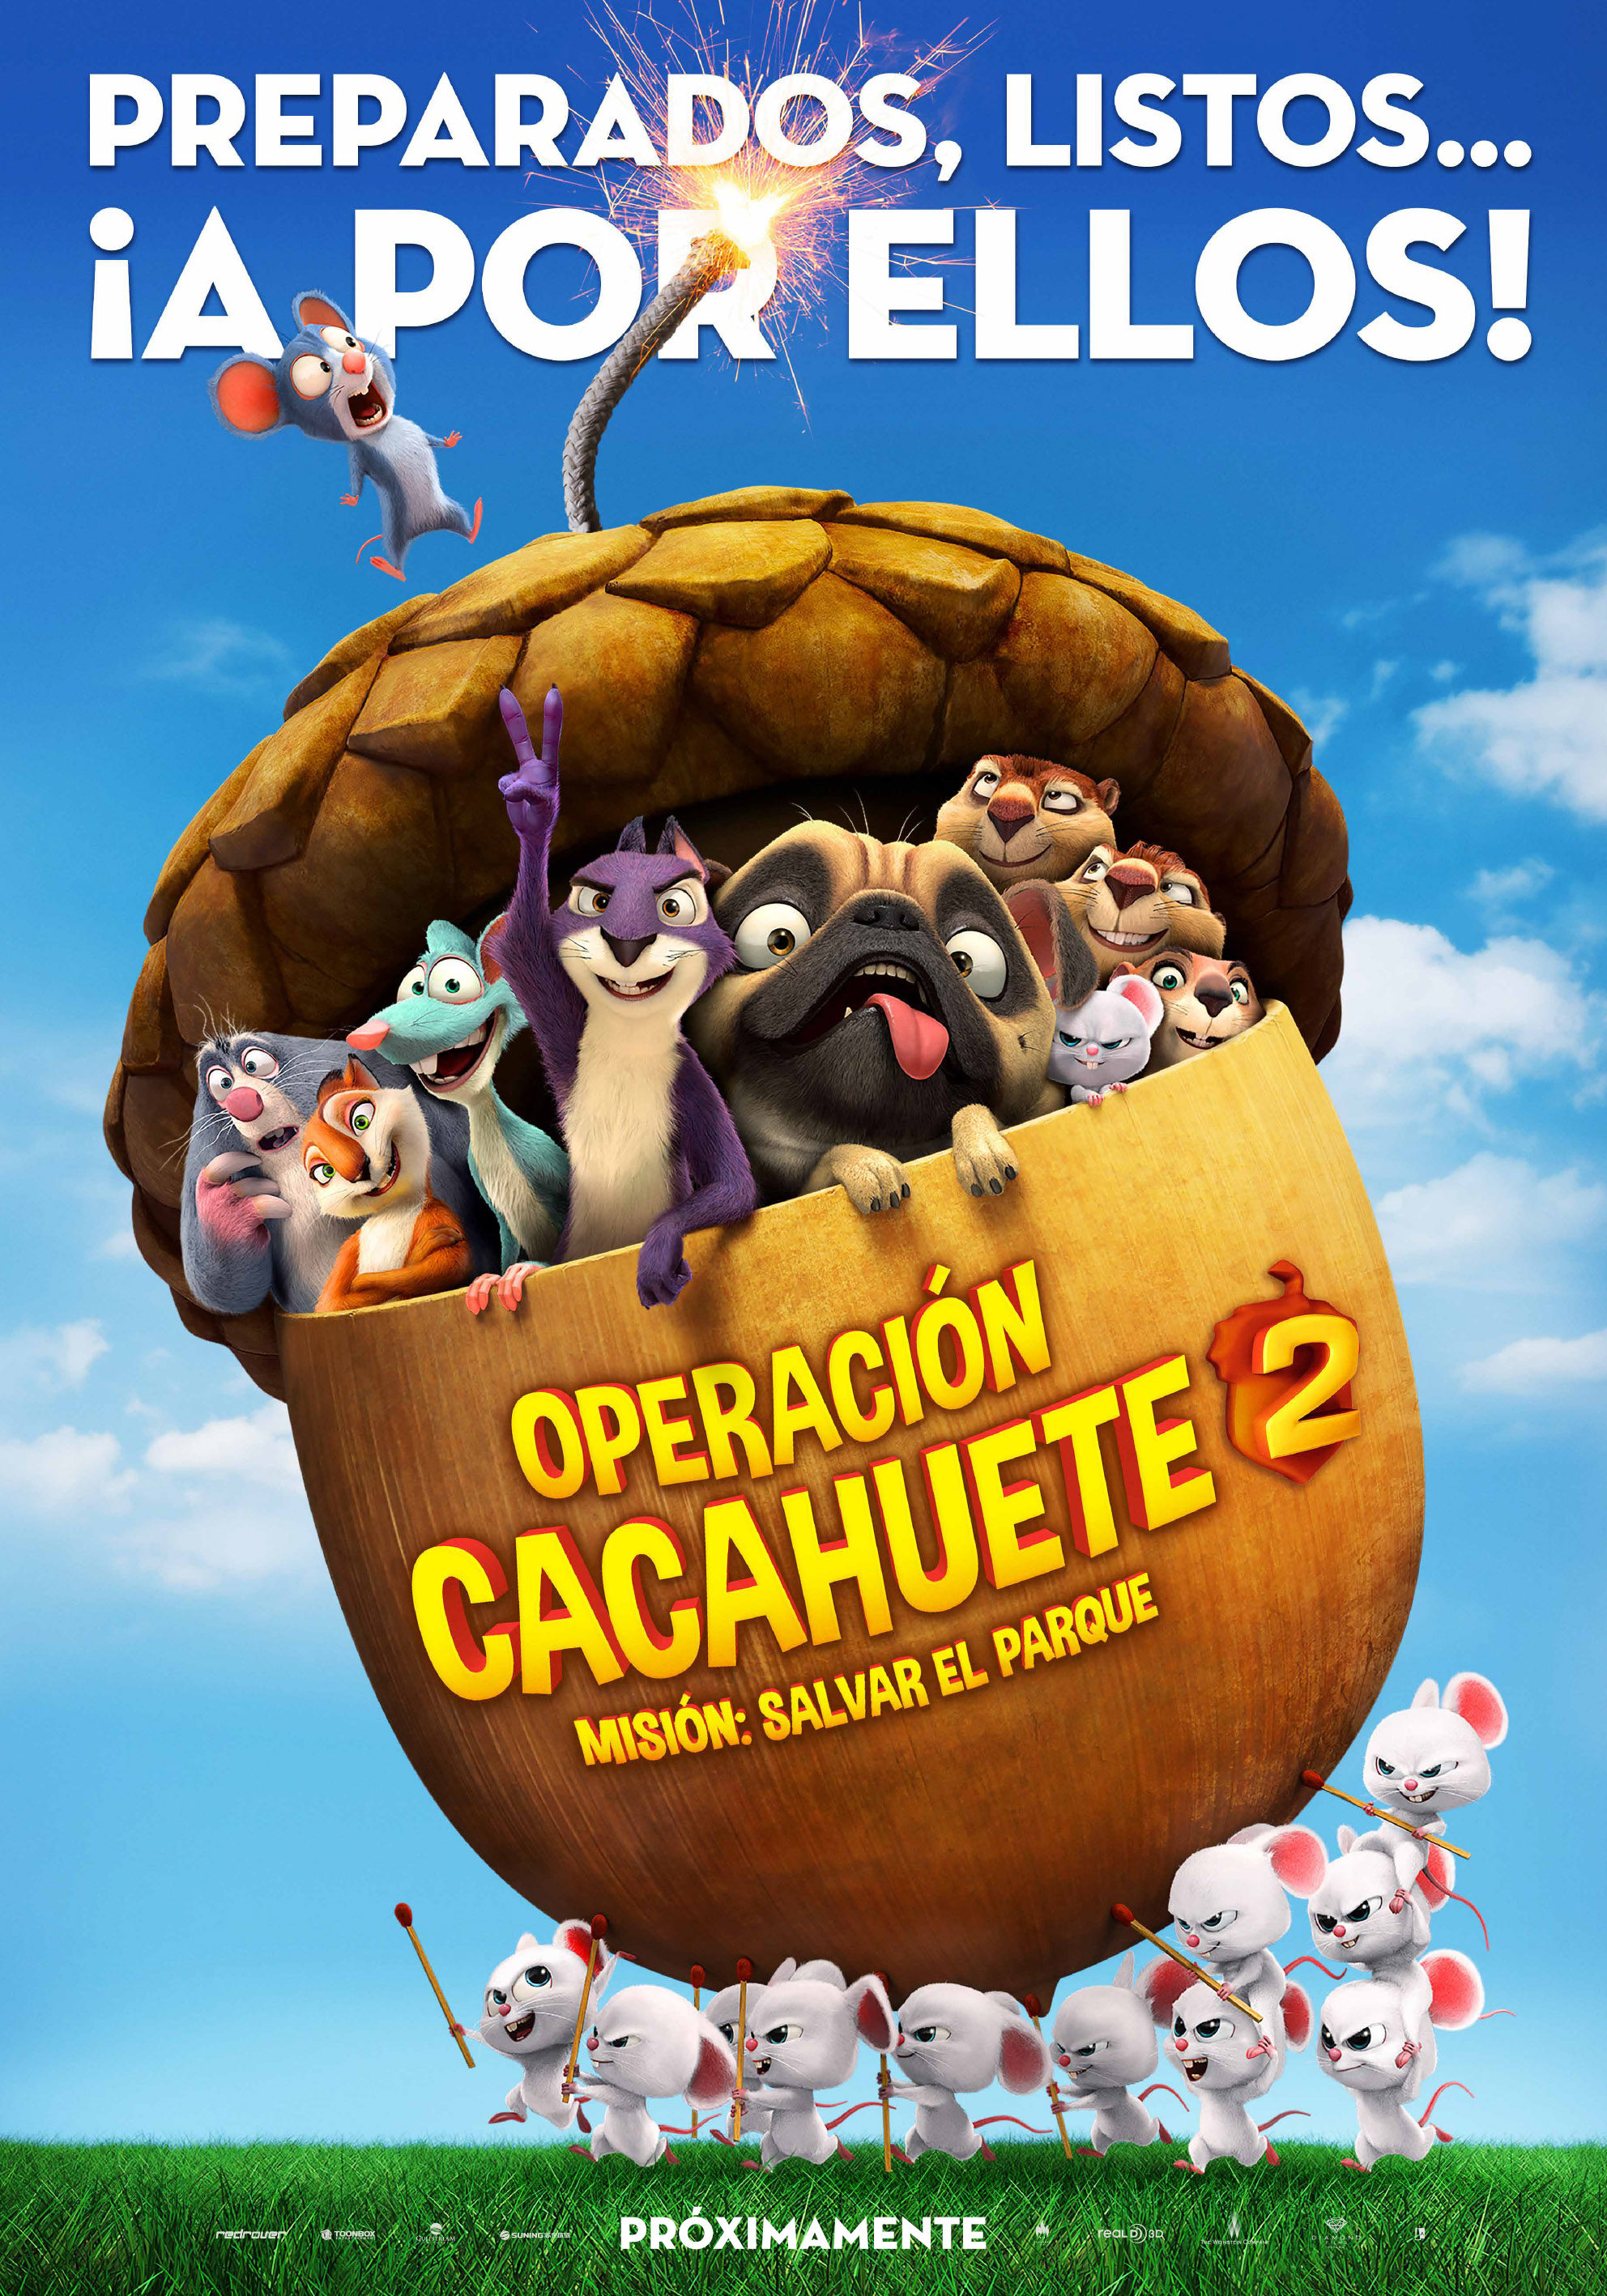 España poster for The Nut Job 2: Nutty by Nature